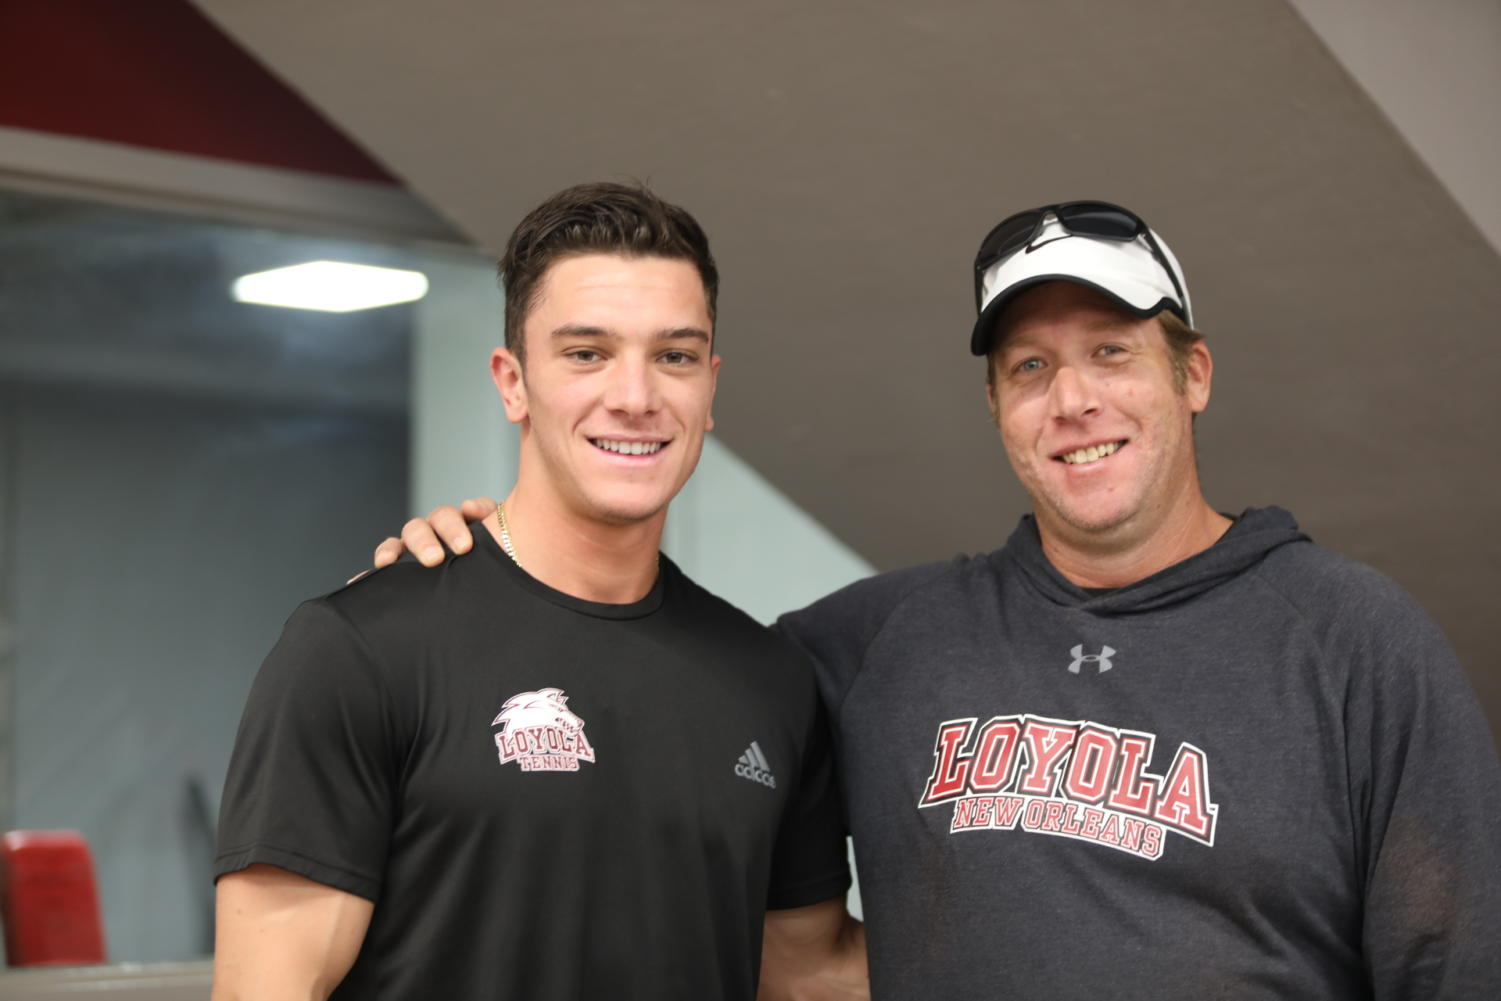 Marketing senior Sean Presti and tennis head coach Kyle Russell pose for a photo at The Den. The duo is cherishing their final year at Loyola together.